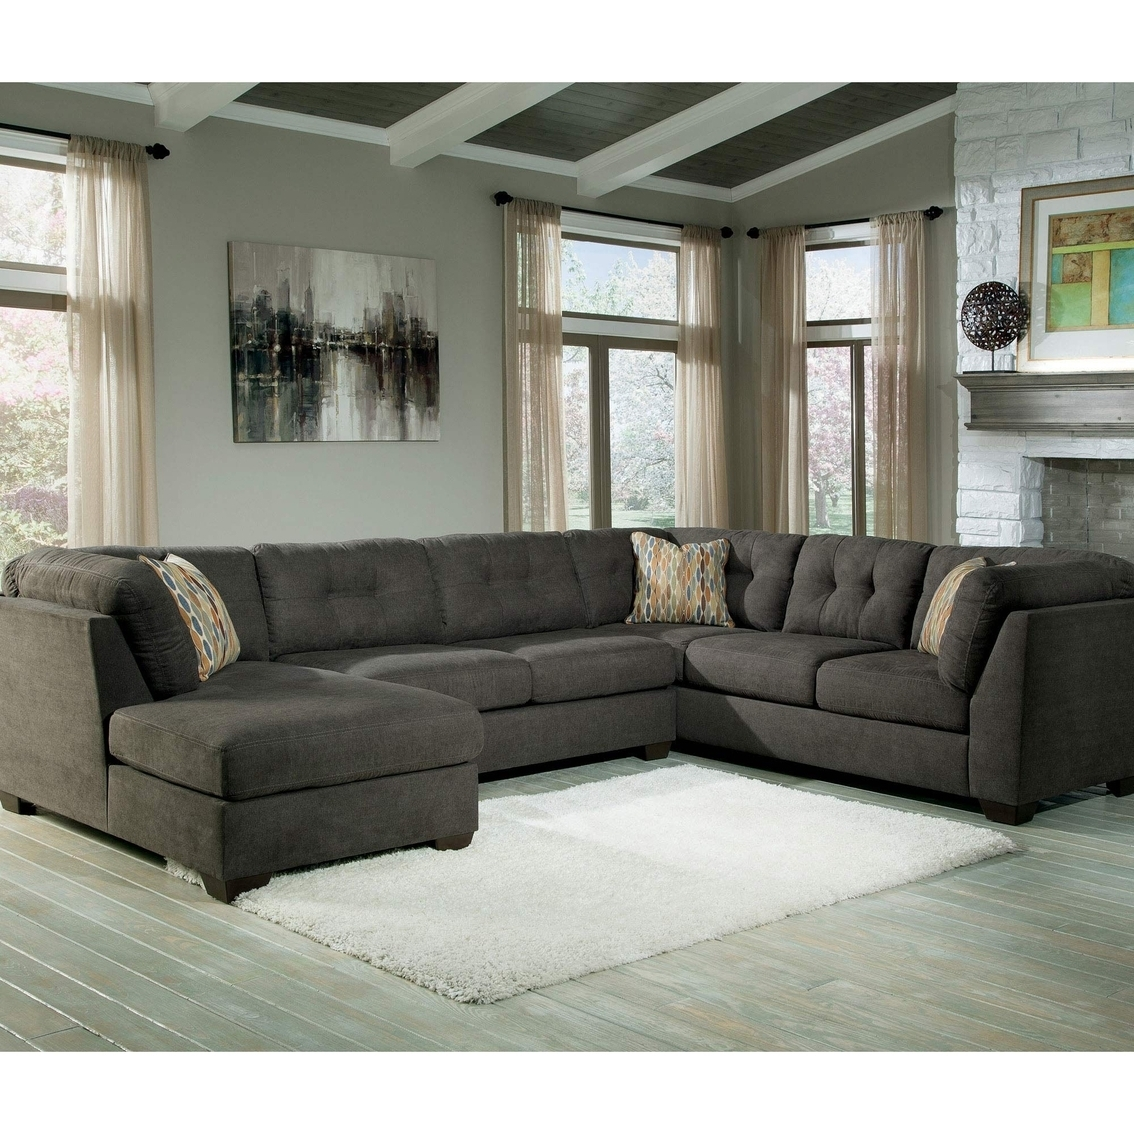 Preferred 3 Piece Sectional Sofas With Chaise With Benchcraft Delta City 3 Pc (View 9 of 15)